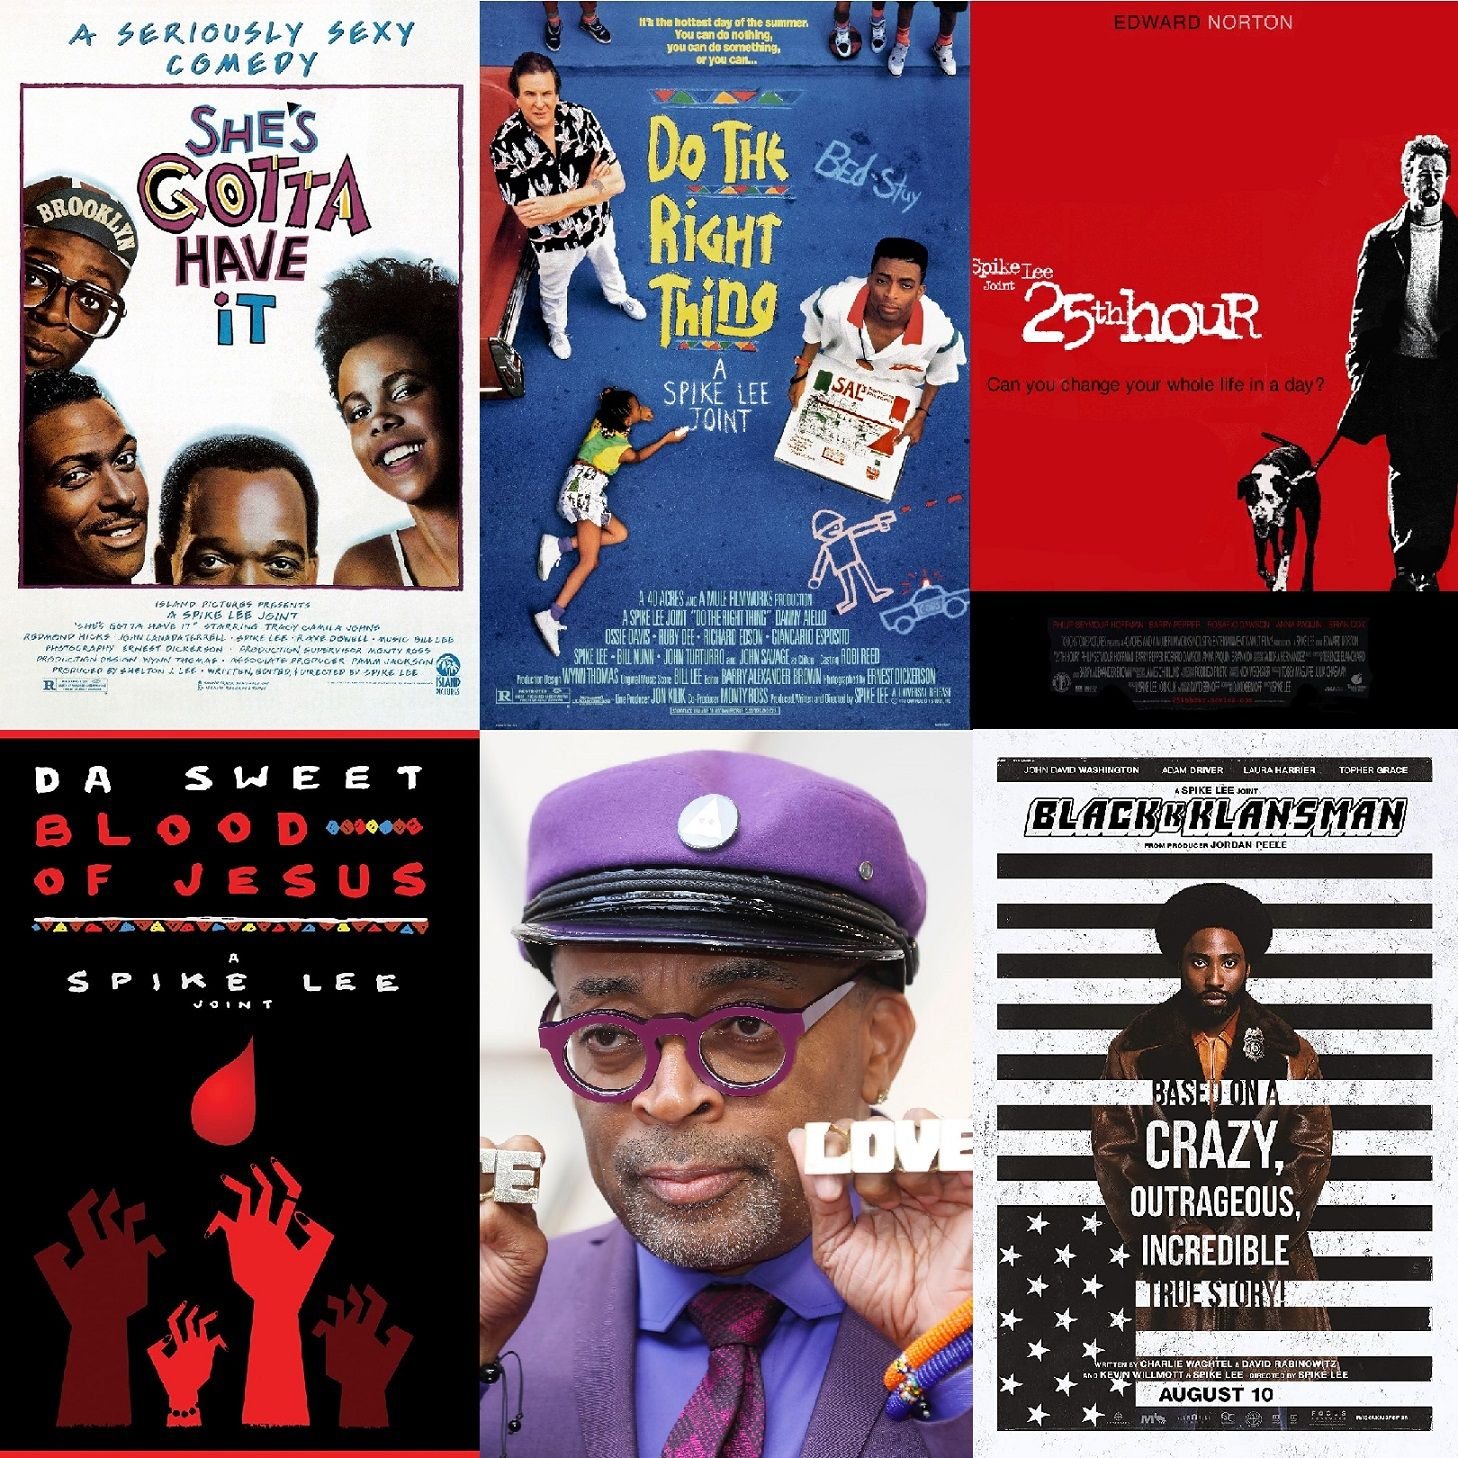 Episode 49: The Films of Spike Lee w/ Ian Anderson